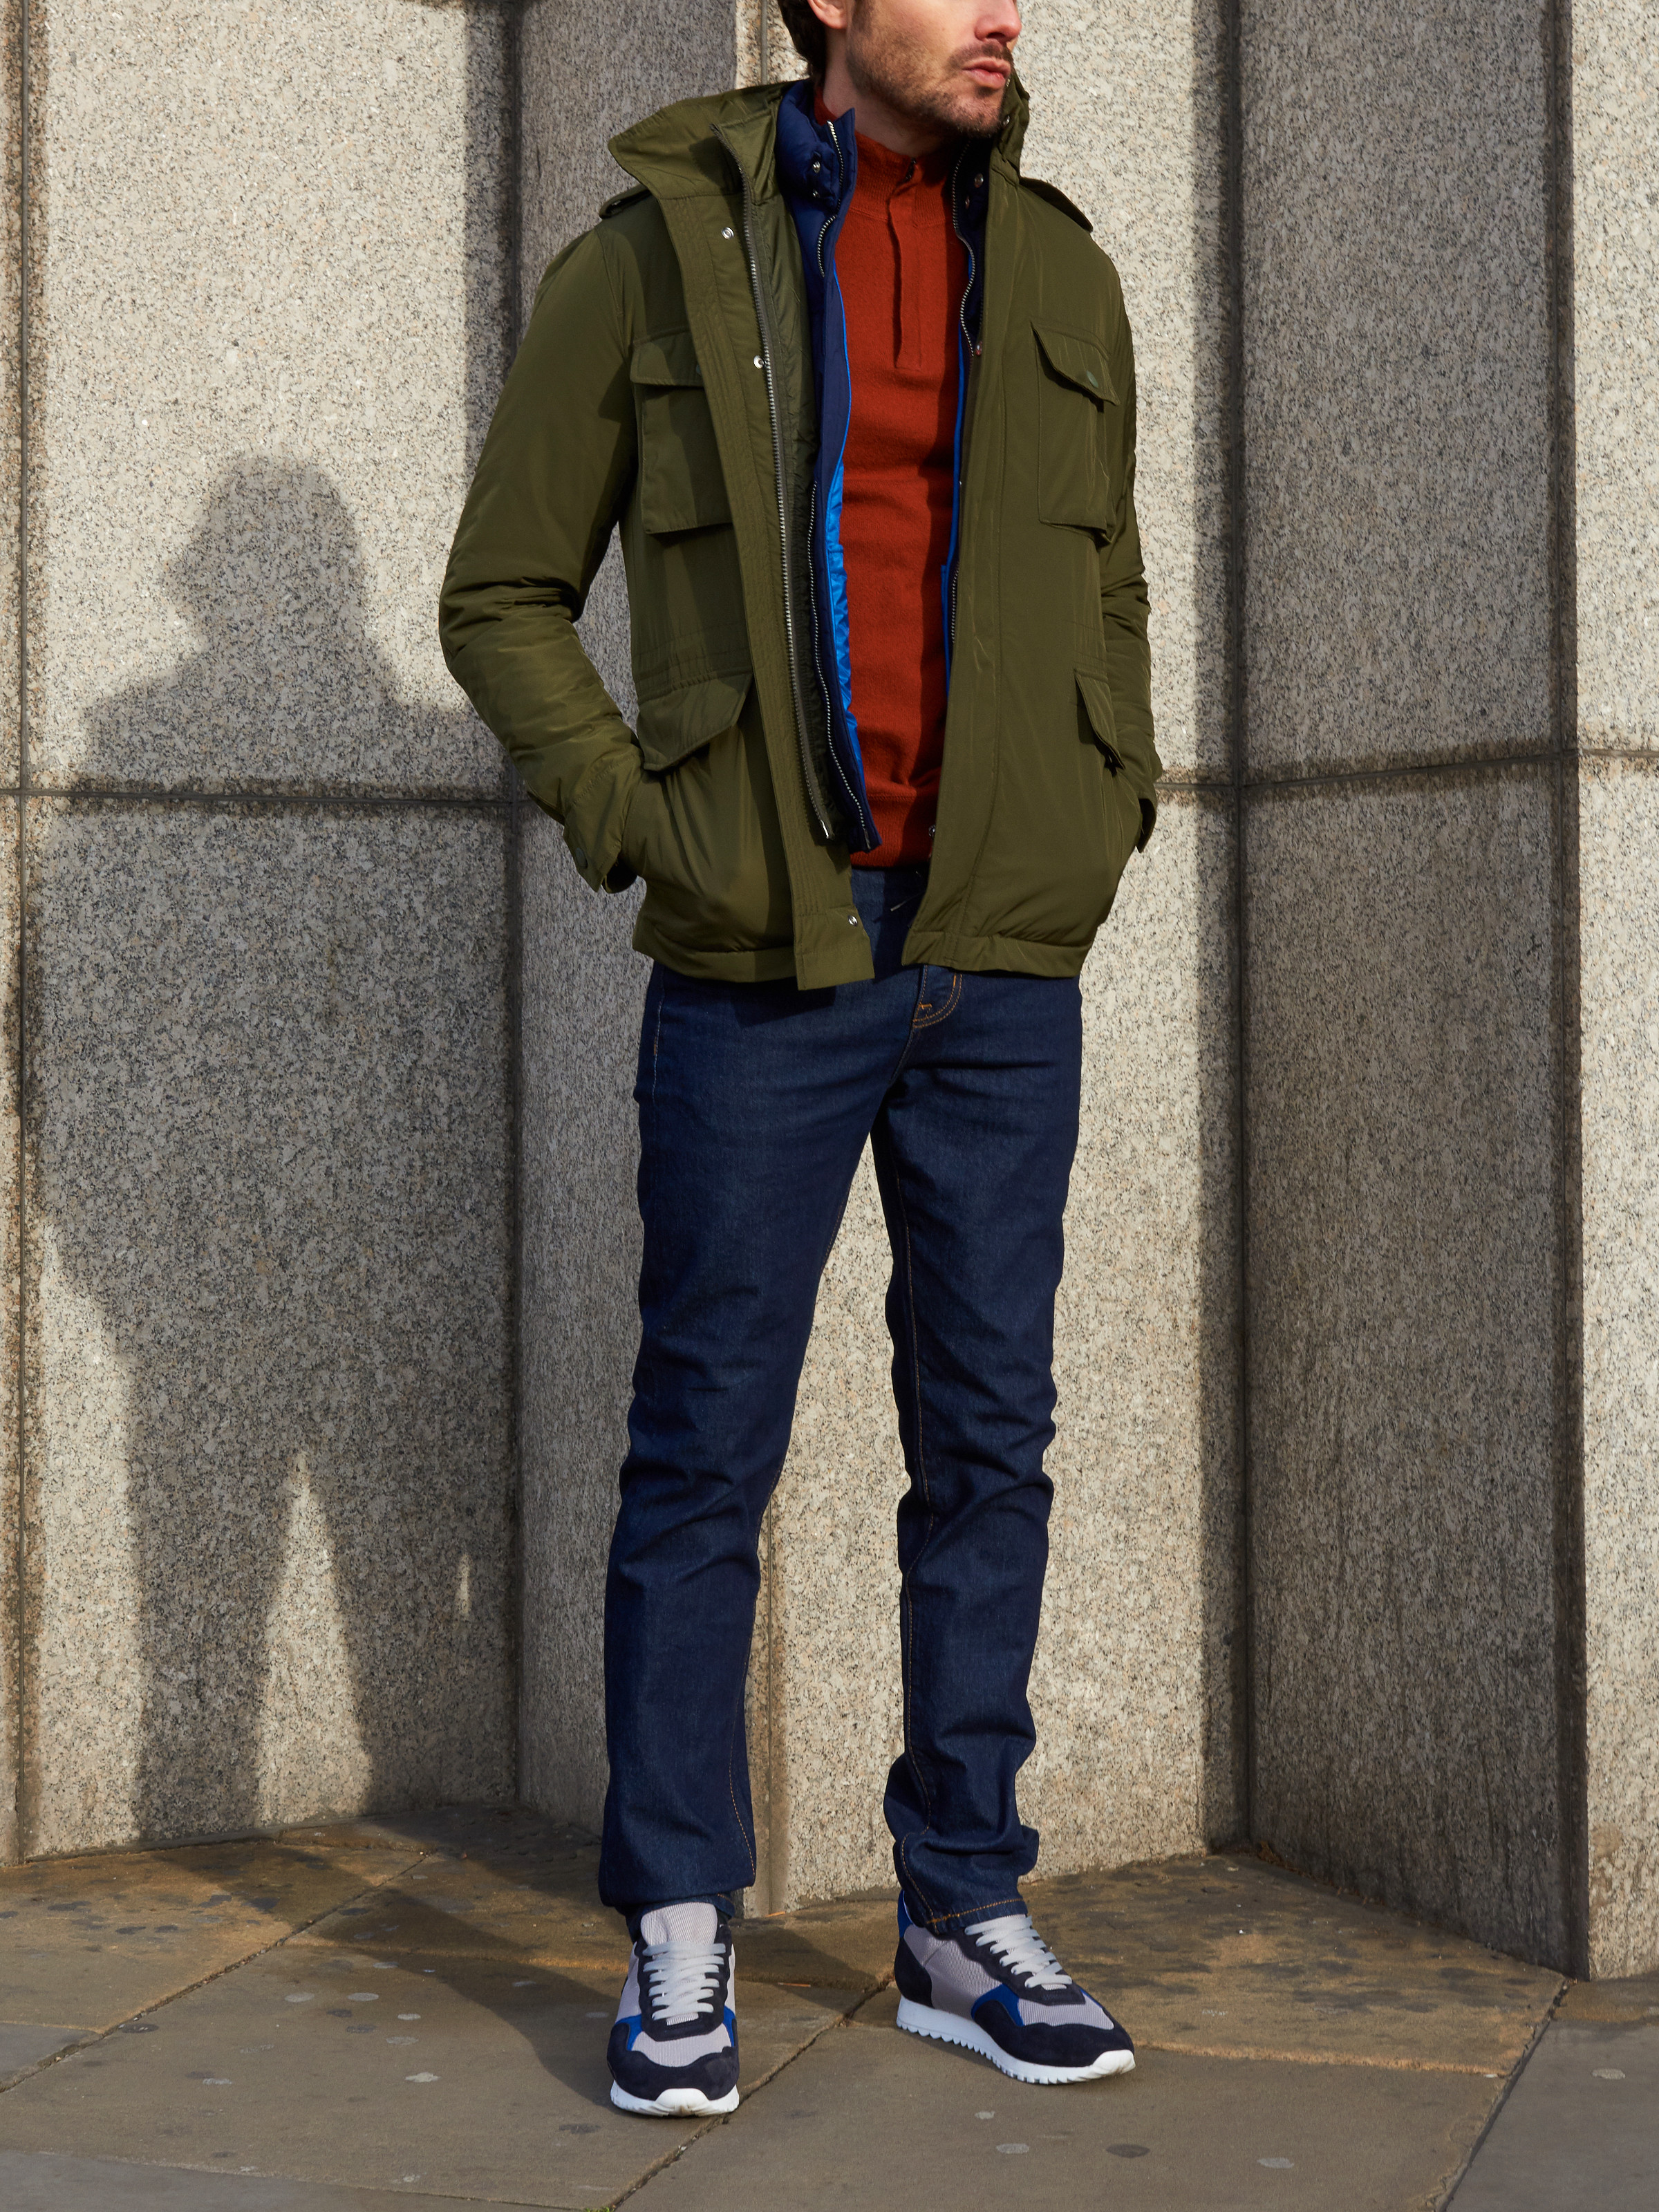 Men's outfit idea for 2021 with field jacket, half-zip / half-button sweater, dark blue jeans, neutral sneakers. Suitable for fall and winter.